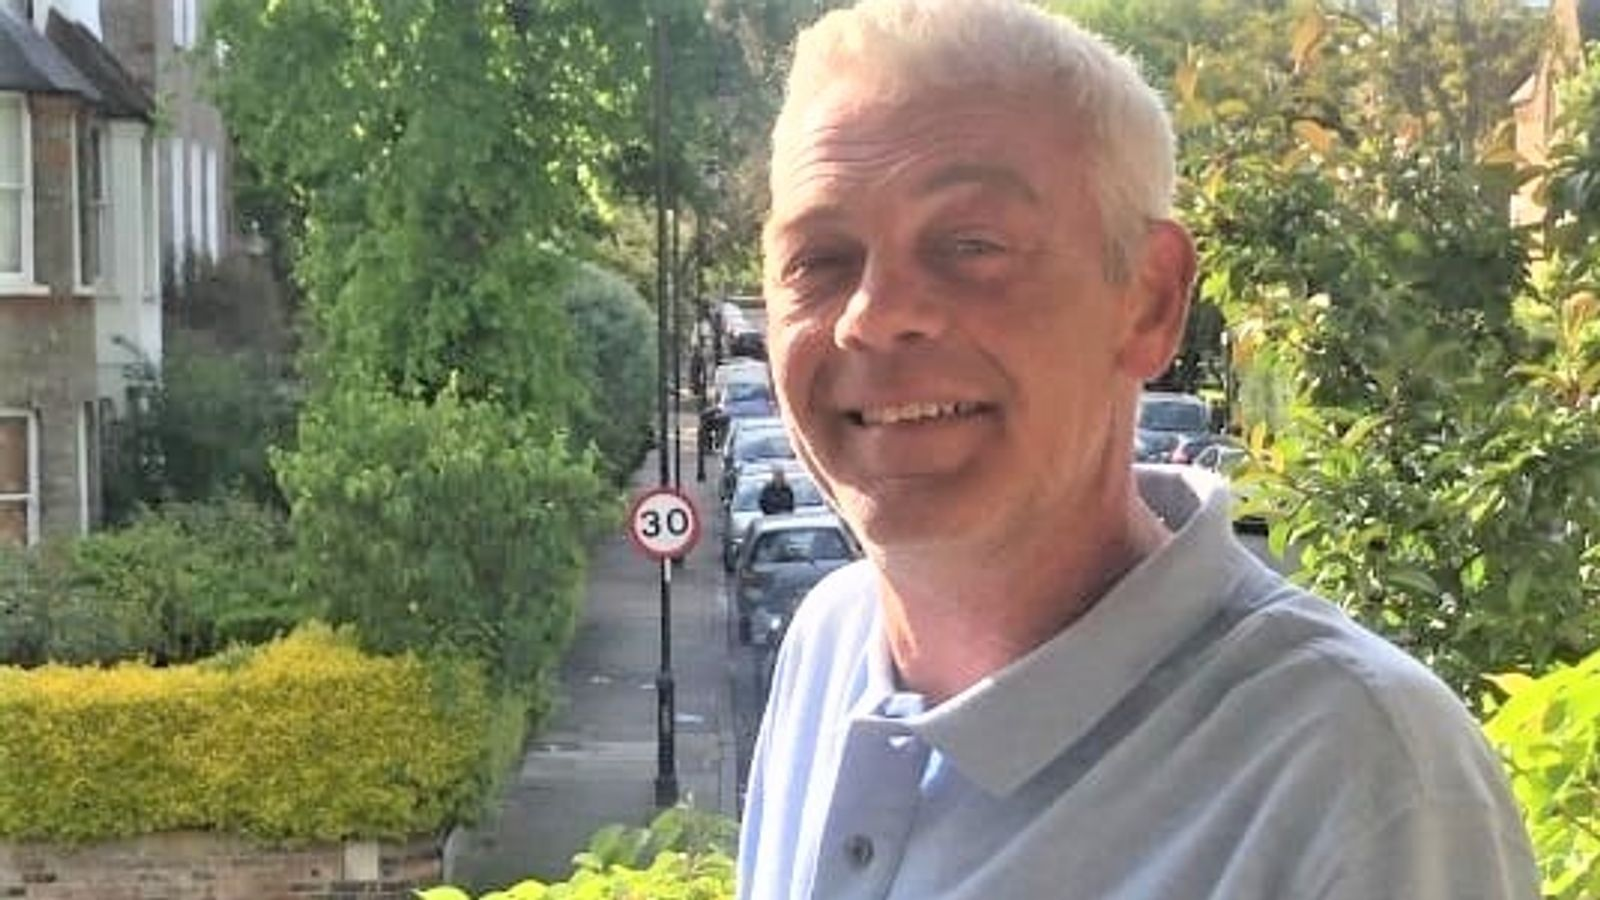 Flower seller stabbing: Man, 21, charged with murder after Tony Eastlake killed near his stall in London